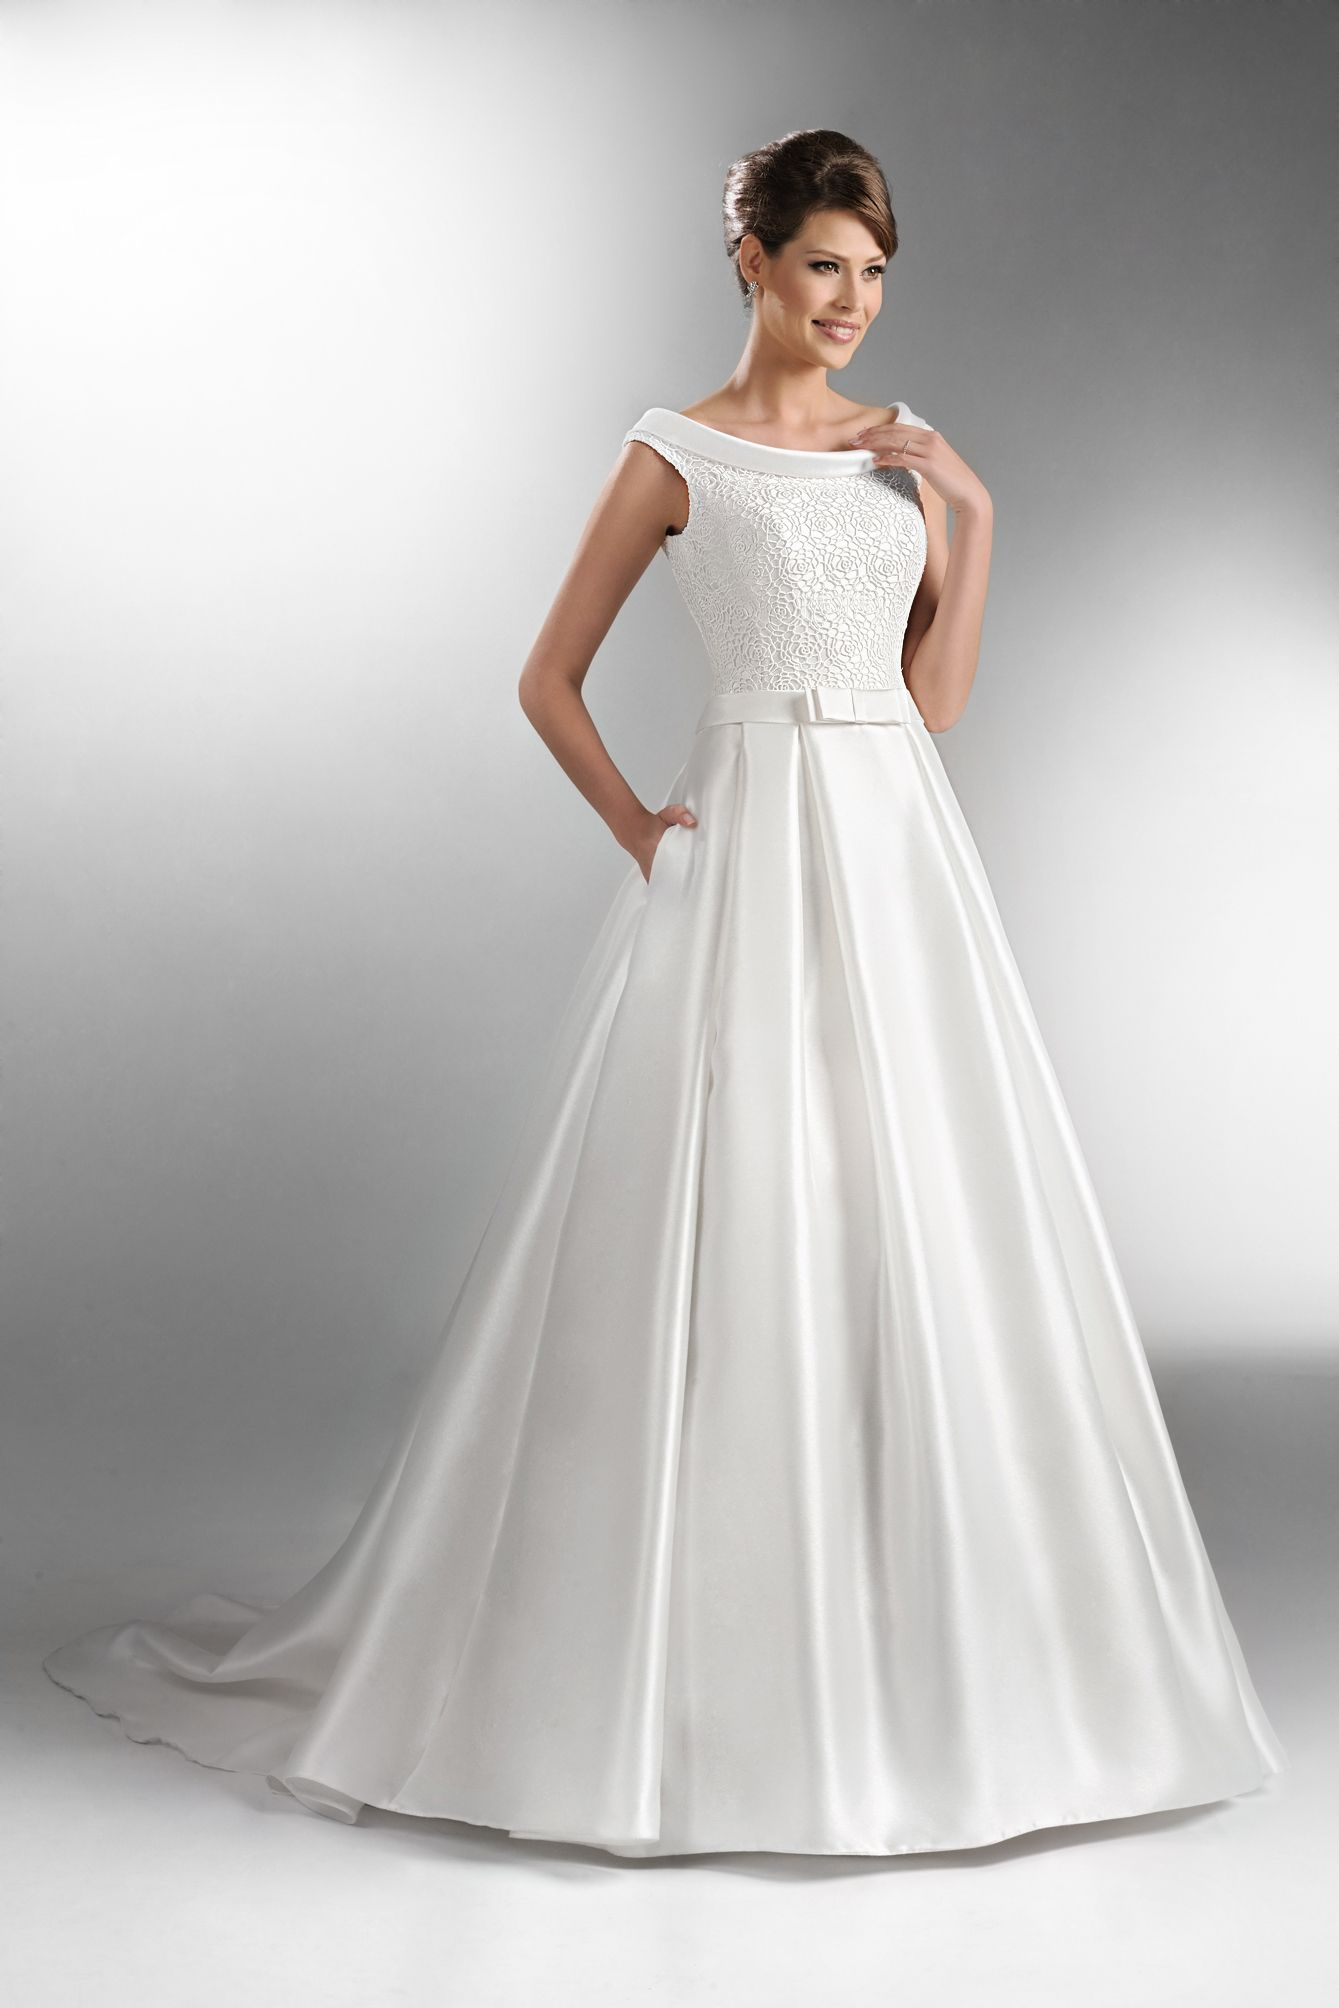 Elegant Bridal Dress With Lace Bodice And Boat Neck